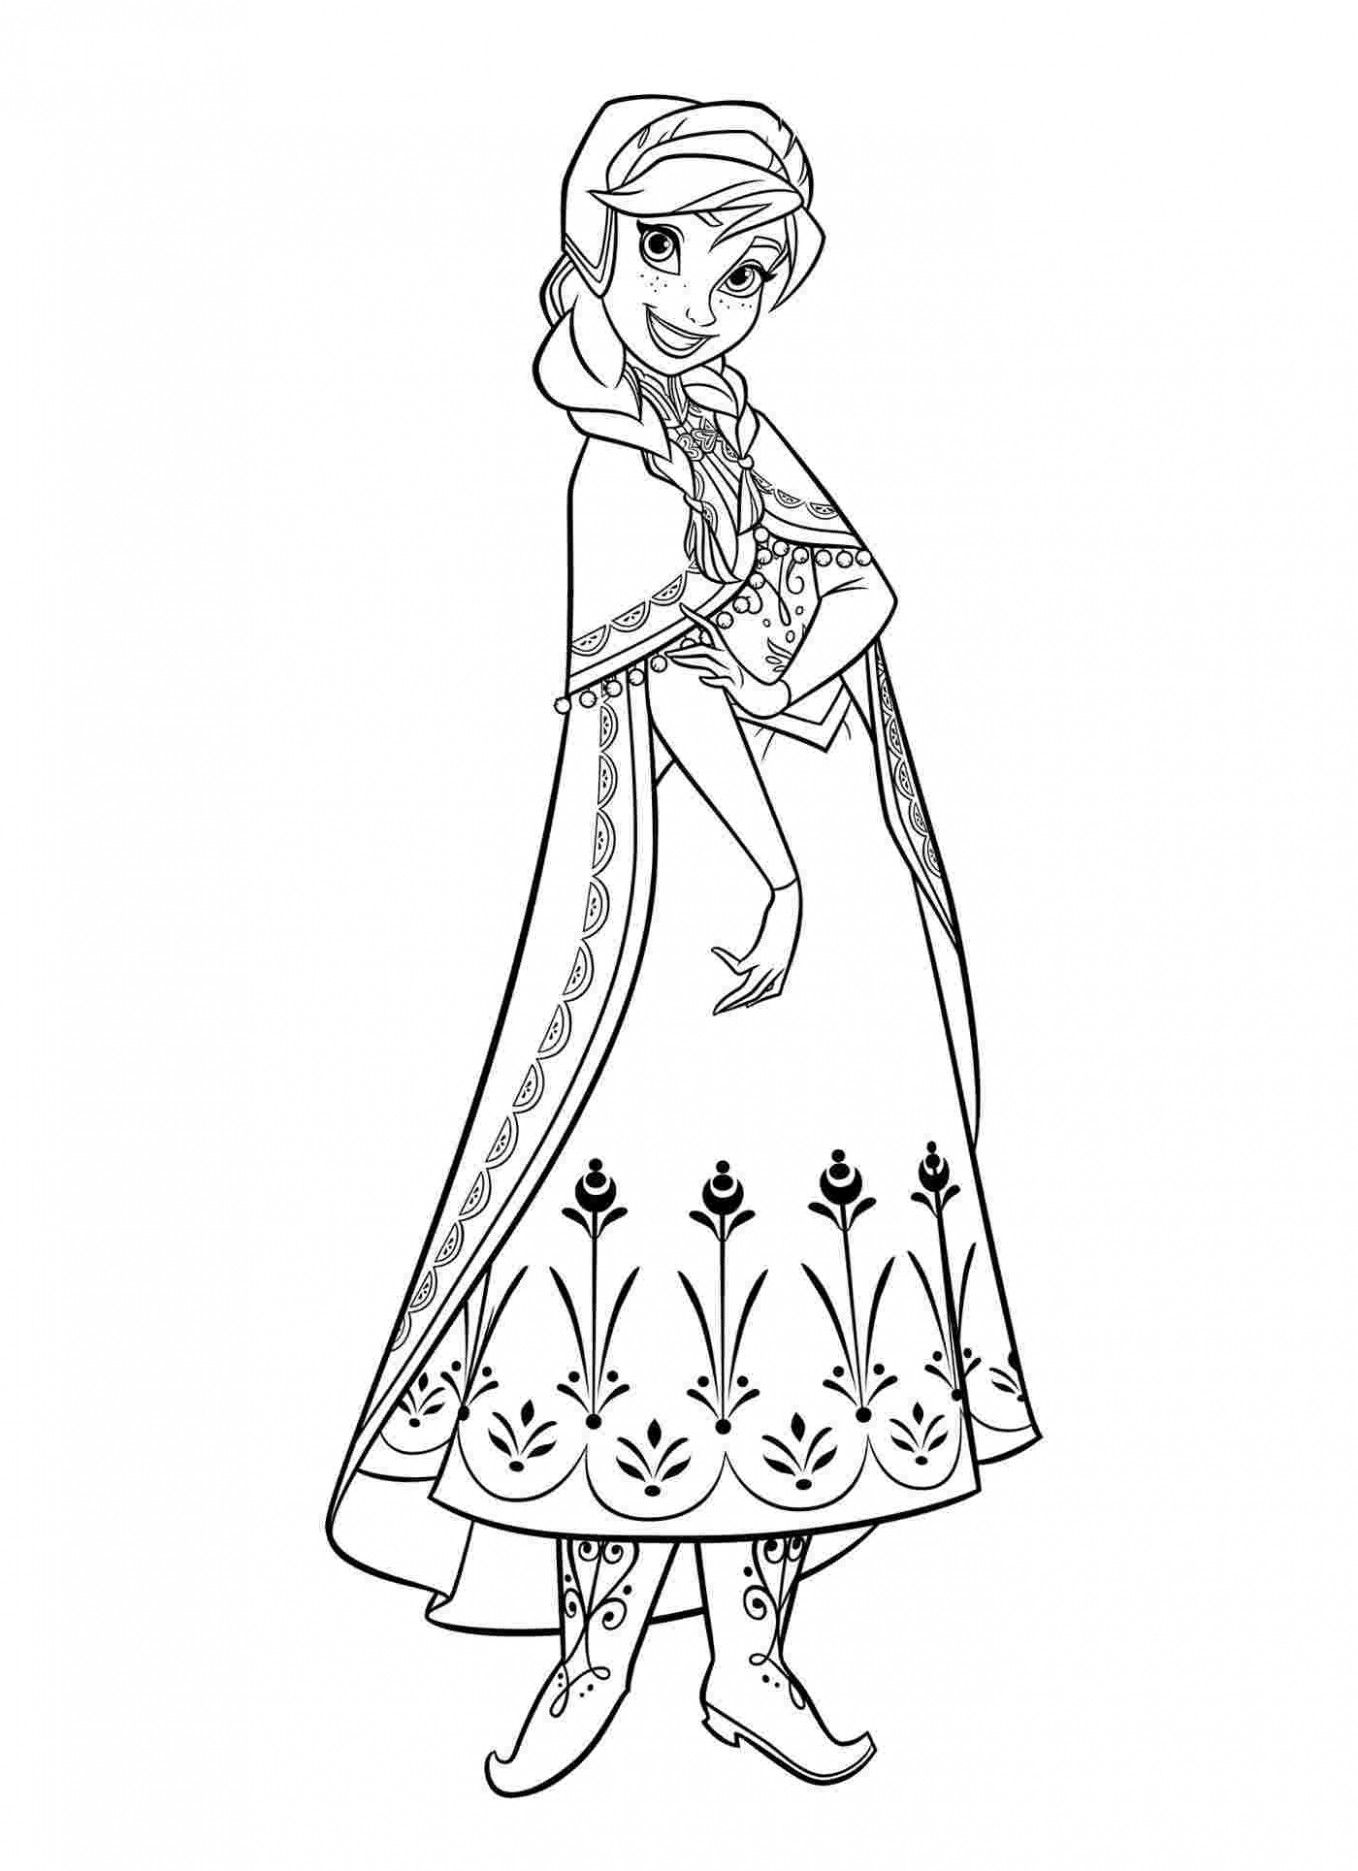 12 Elsa And Anna Printables In 2020 Frozen Coloring Princess Coloring Pages Frozen Coloring Pages